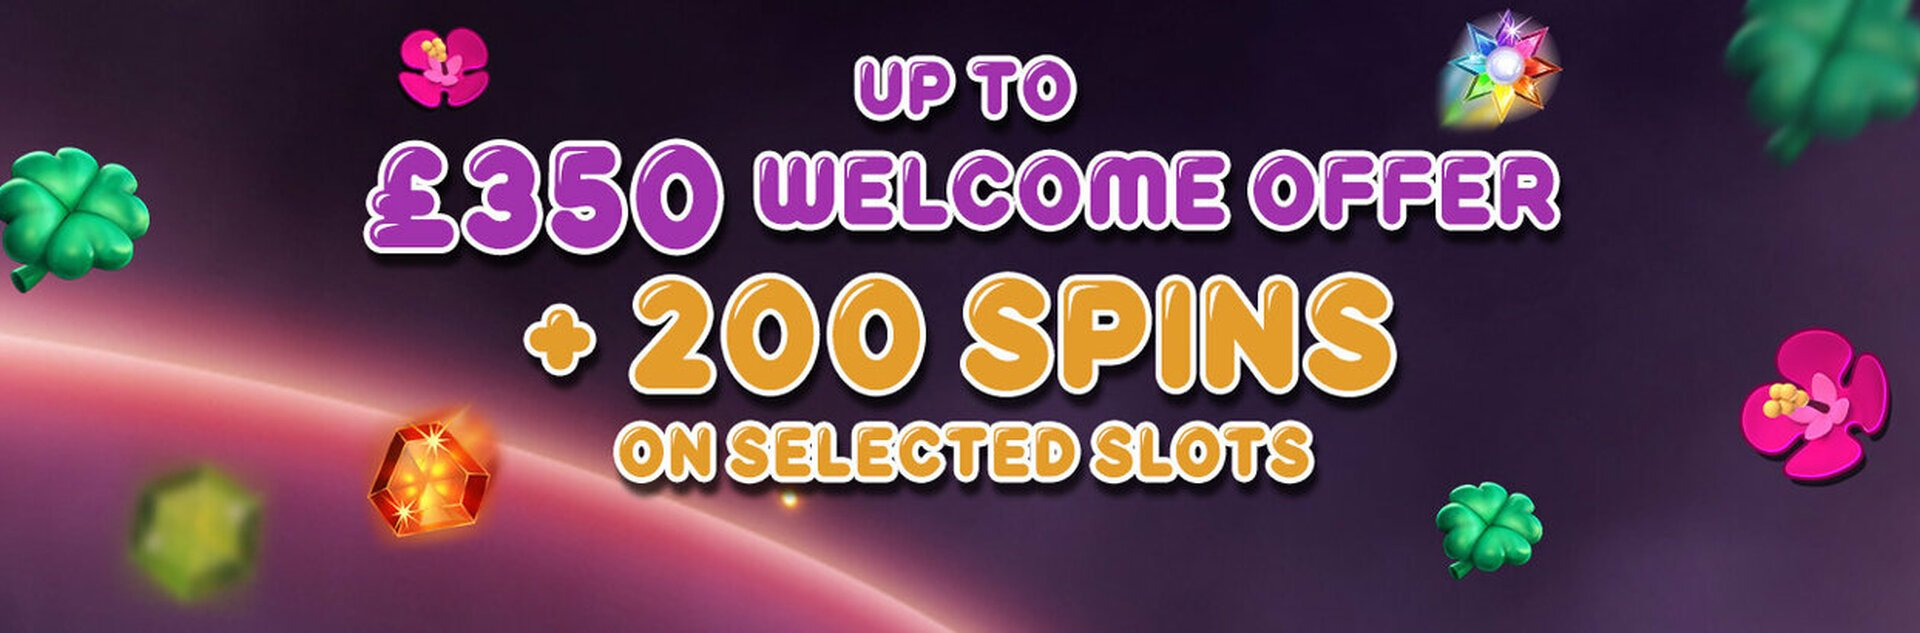 watchmyspin casino review UK